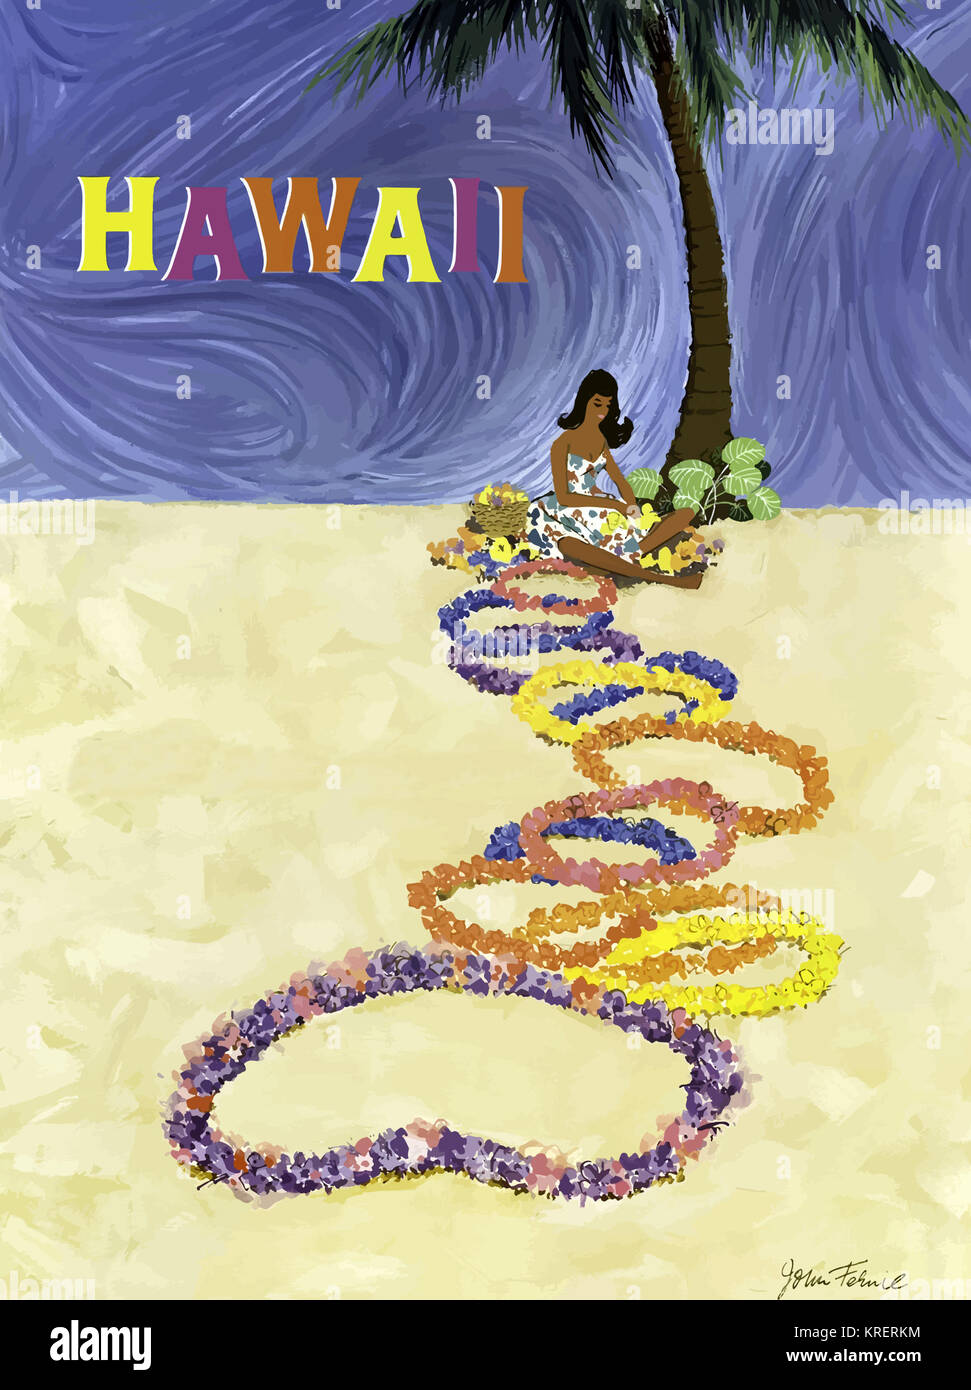 Hawaii - Lei on the Sand - Stock Image